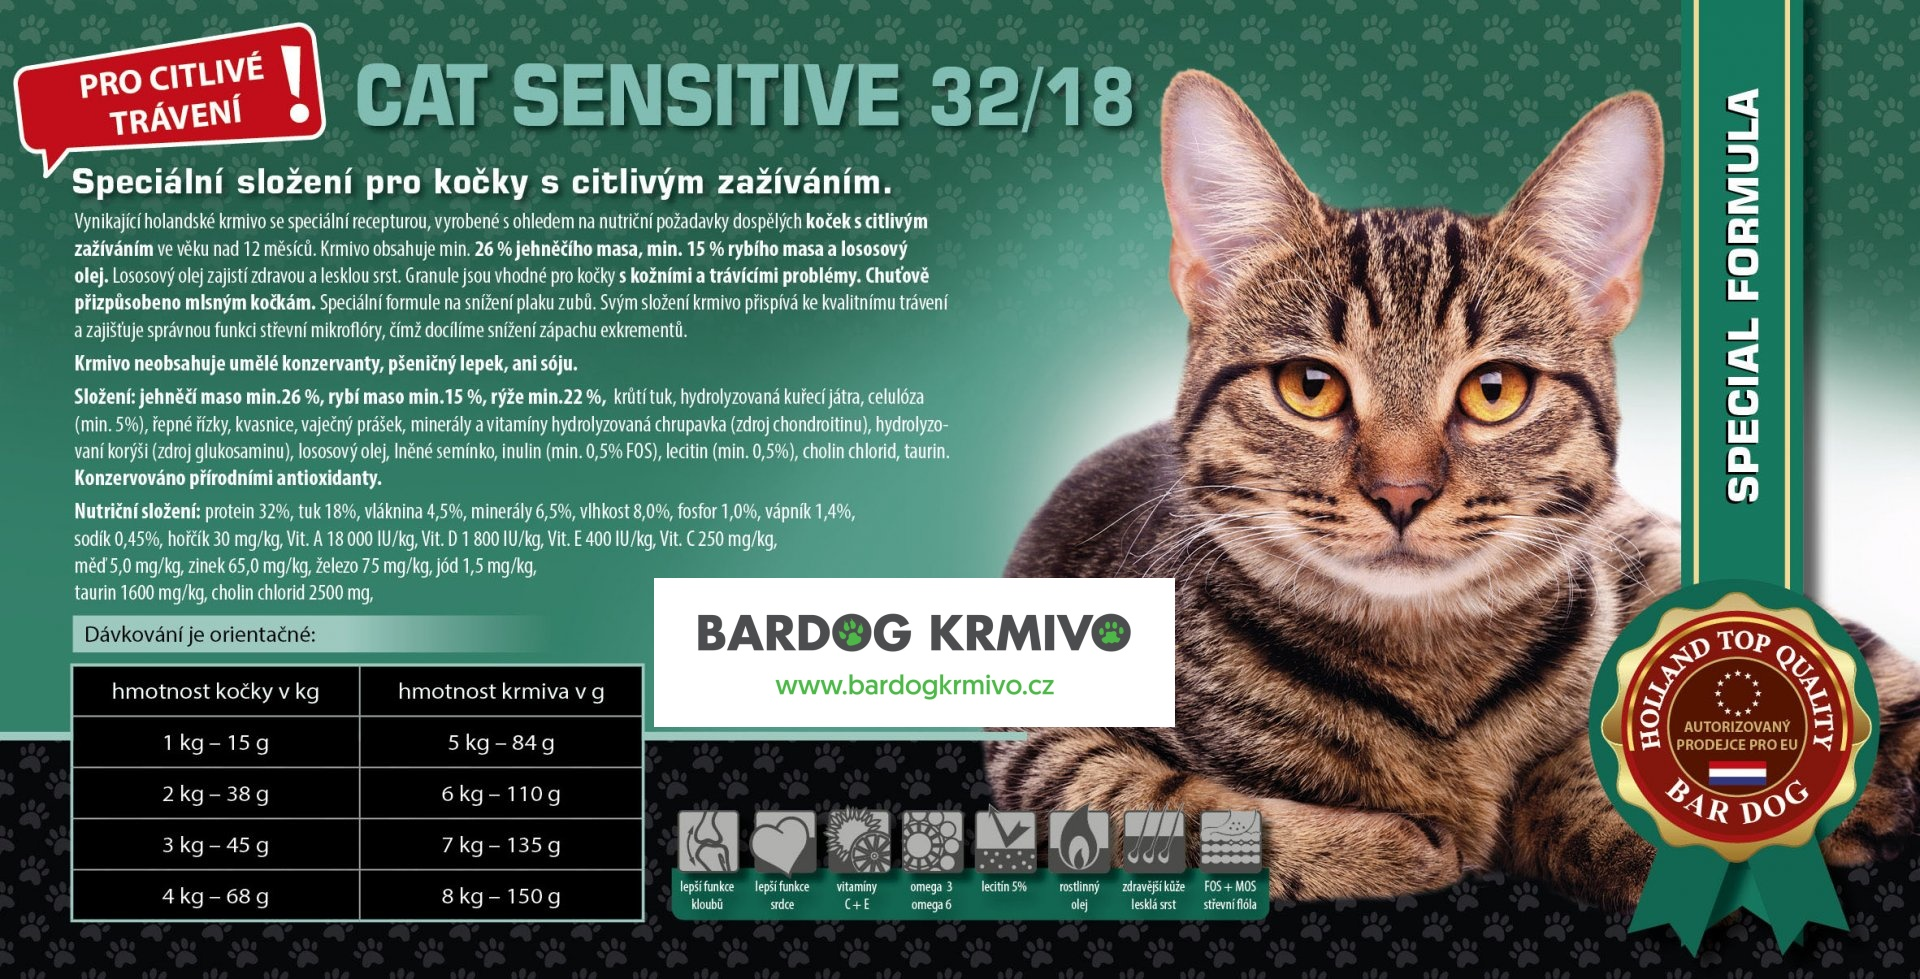 cat sensitive